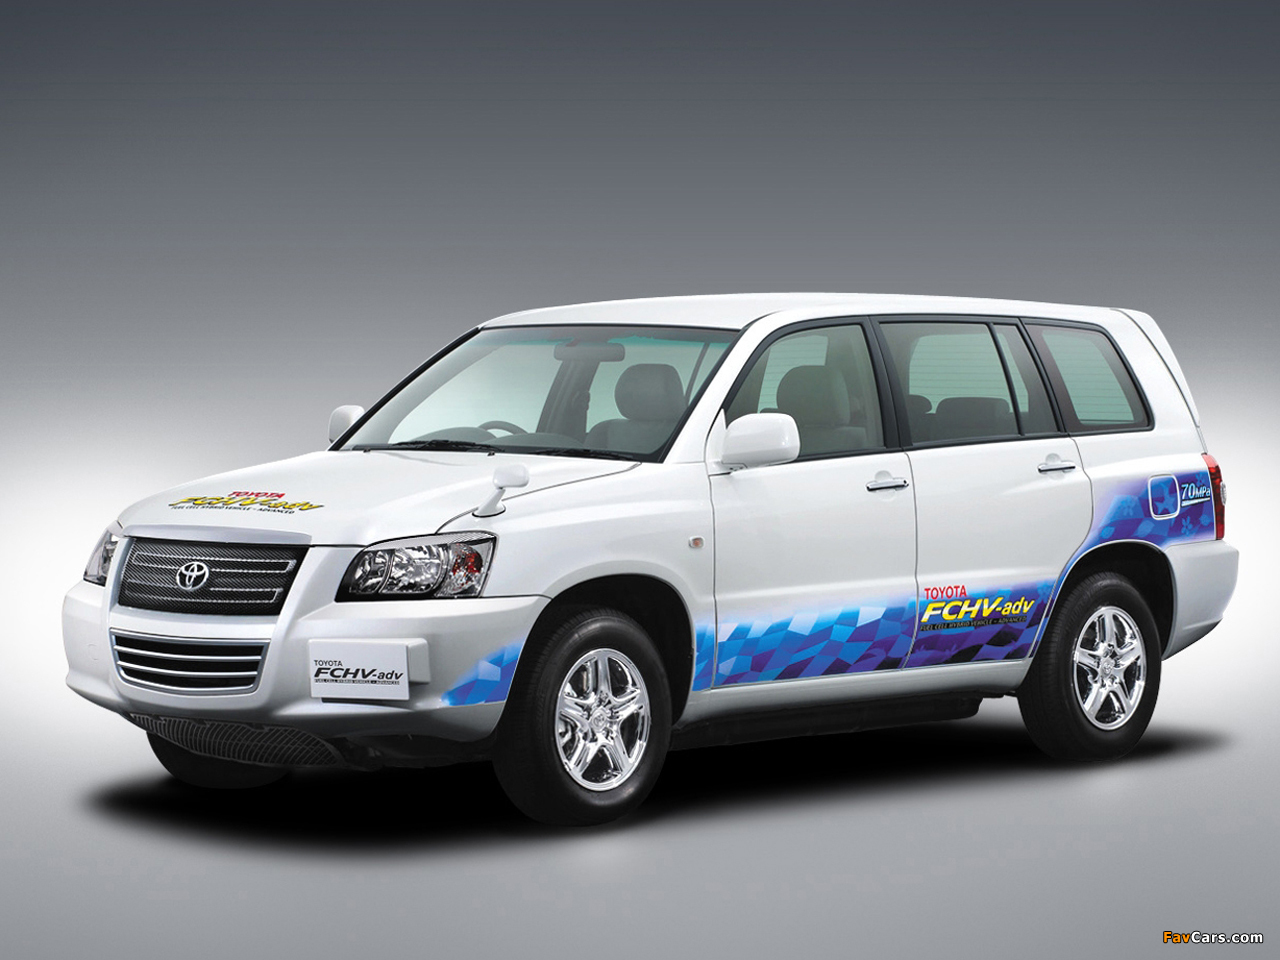 Toyota FCHV Advanced 2007 pictures (1280 x 960)